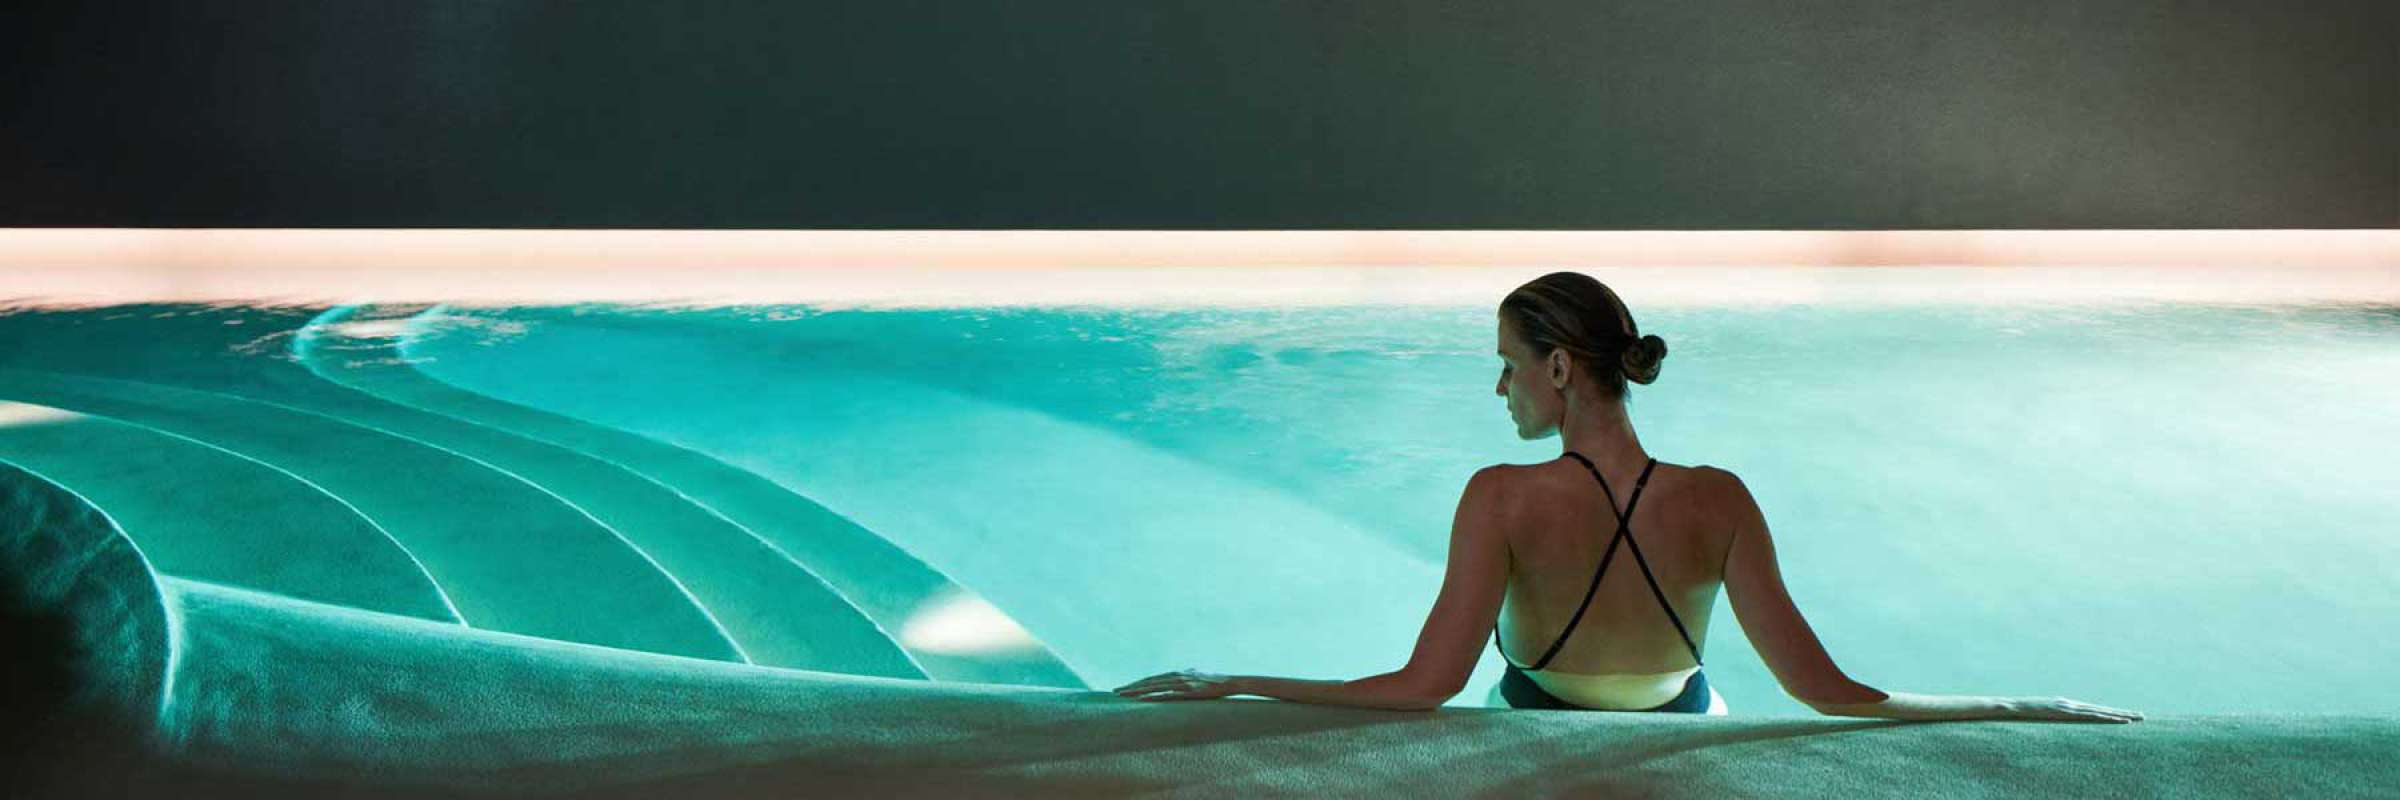 Portopiccolo Spa by Bakel Indoor Pool